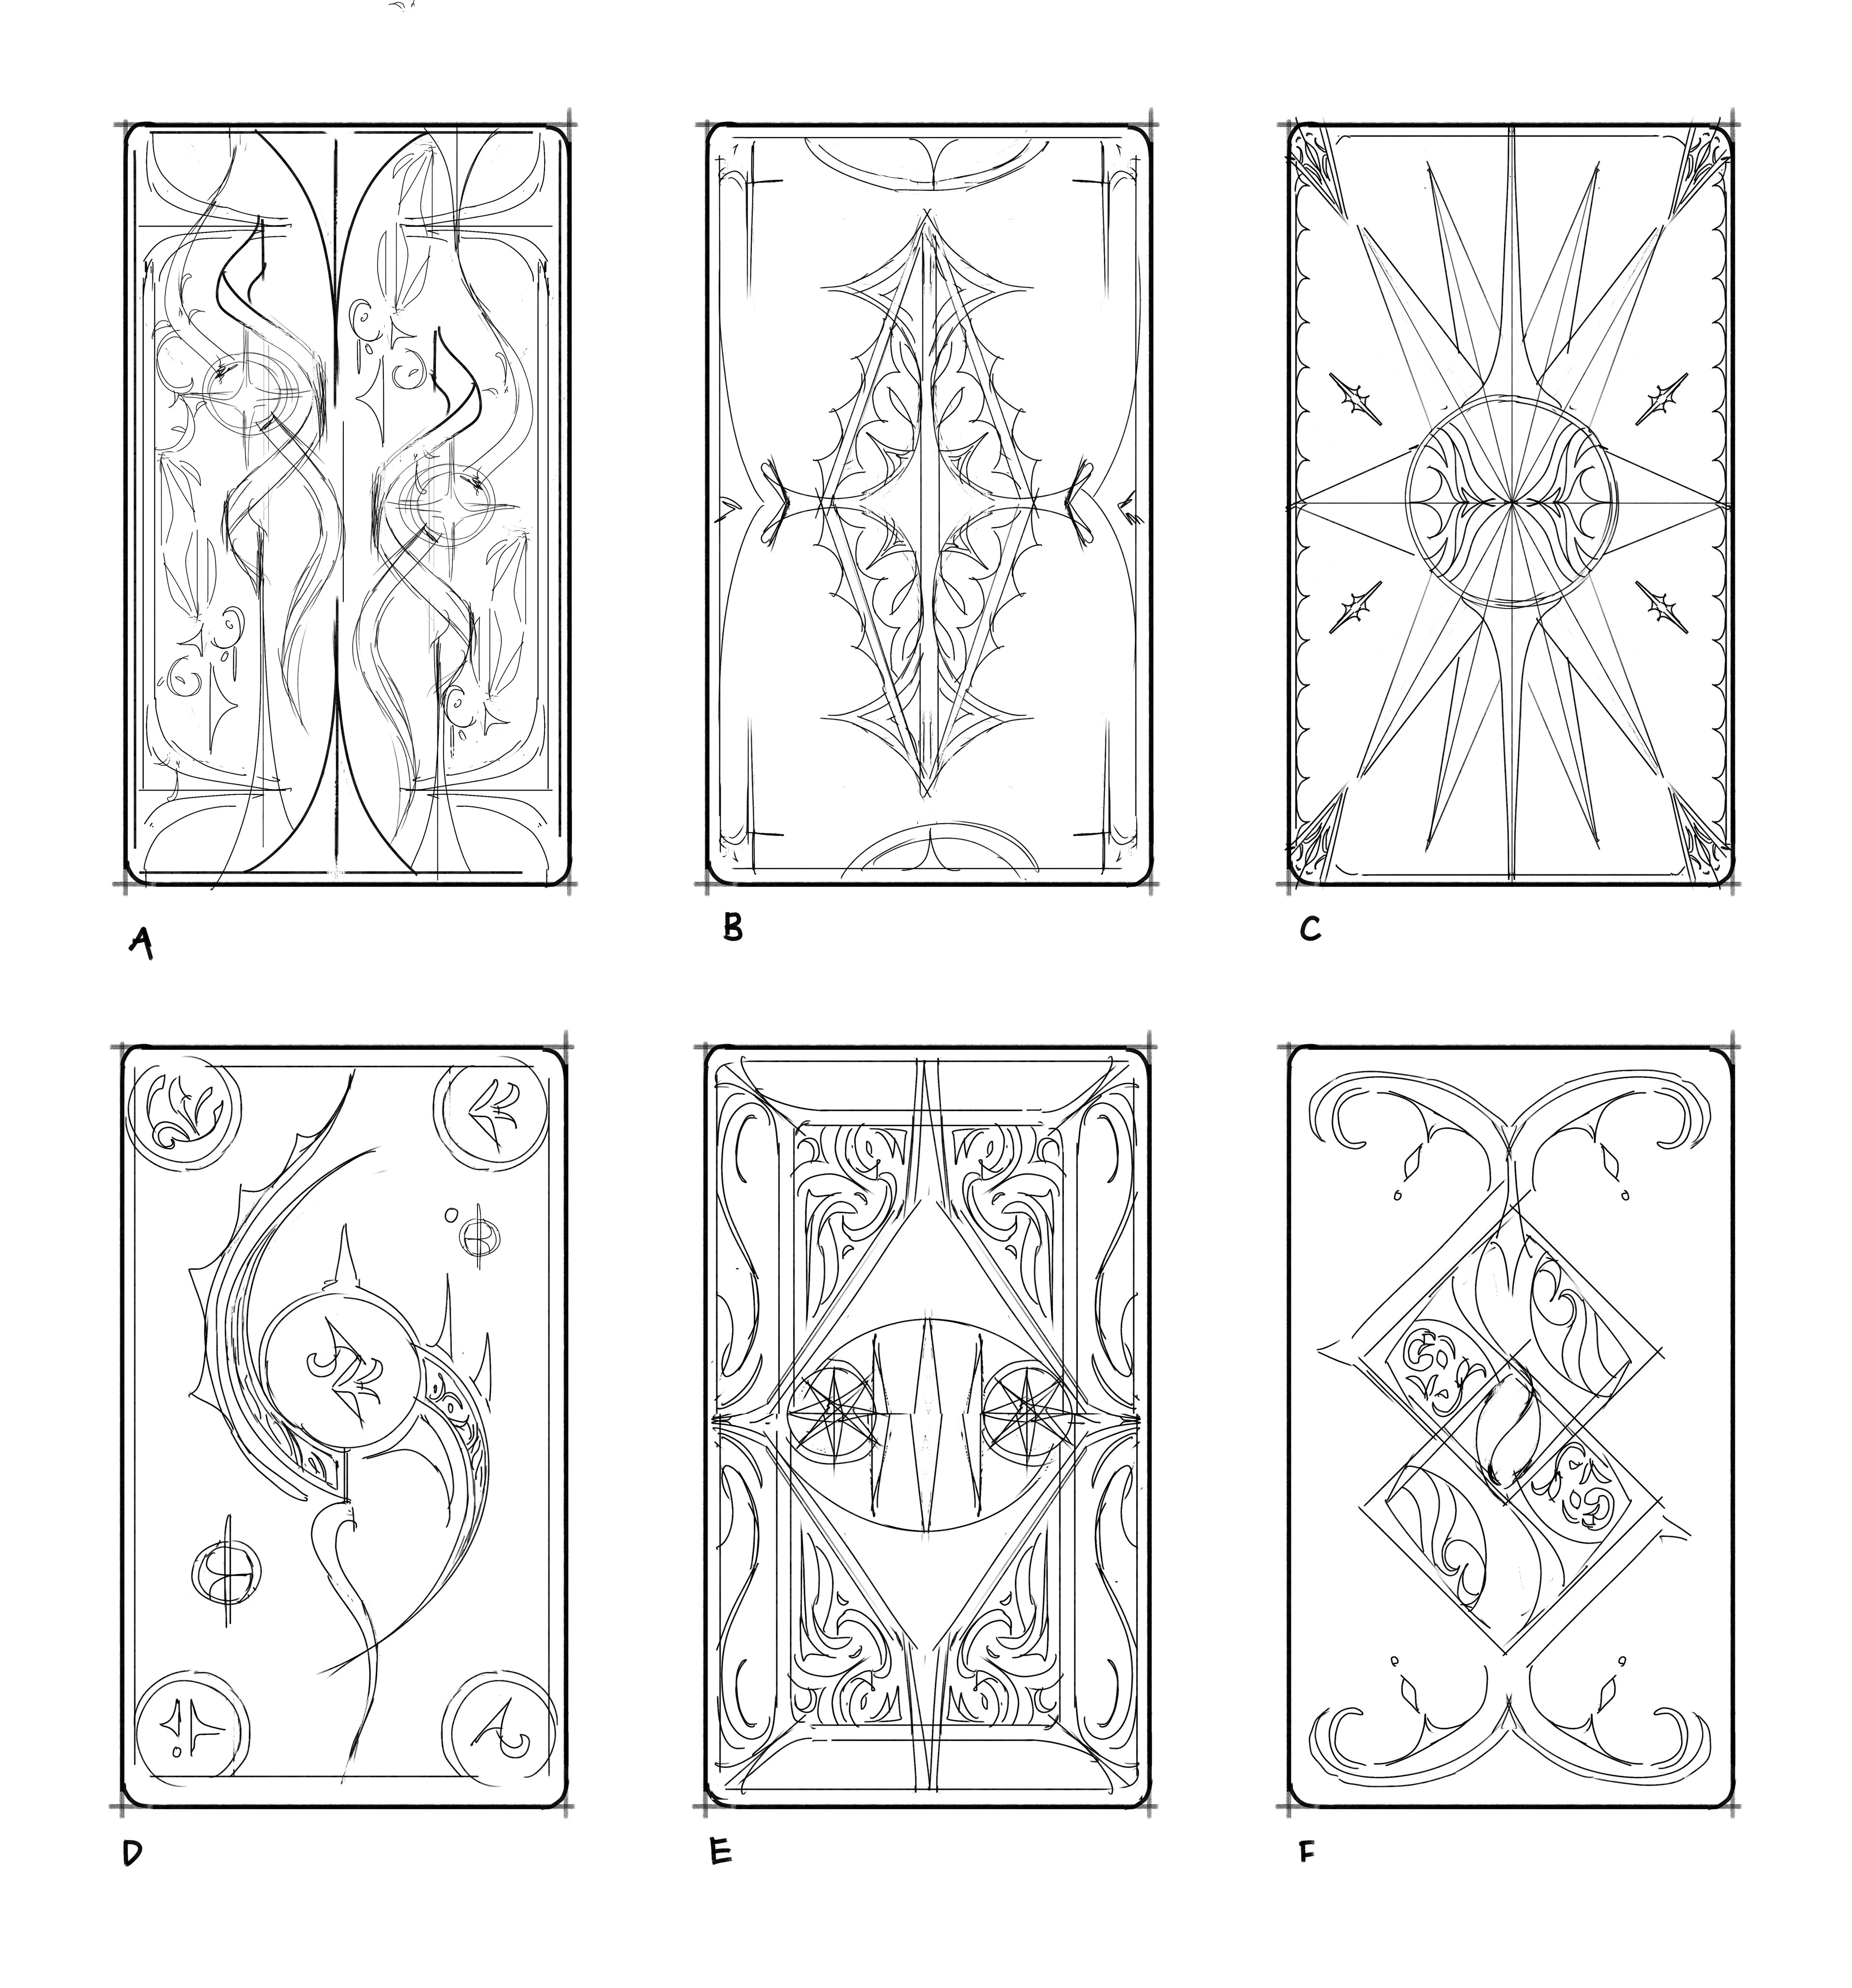 Card back ideations.